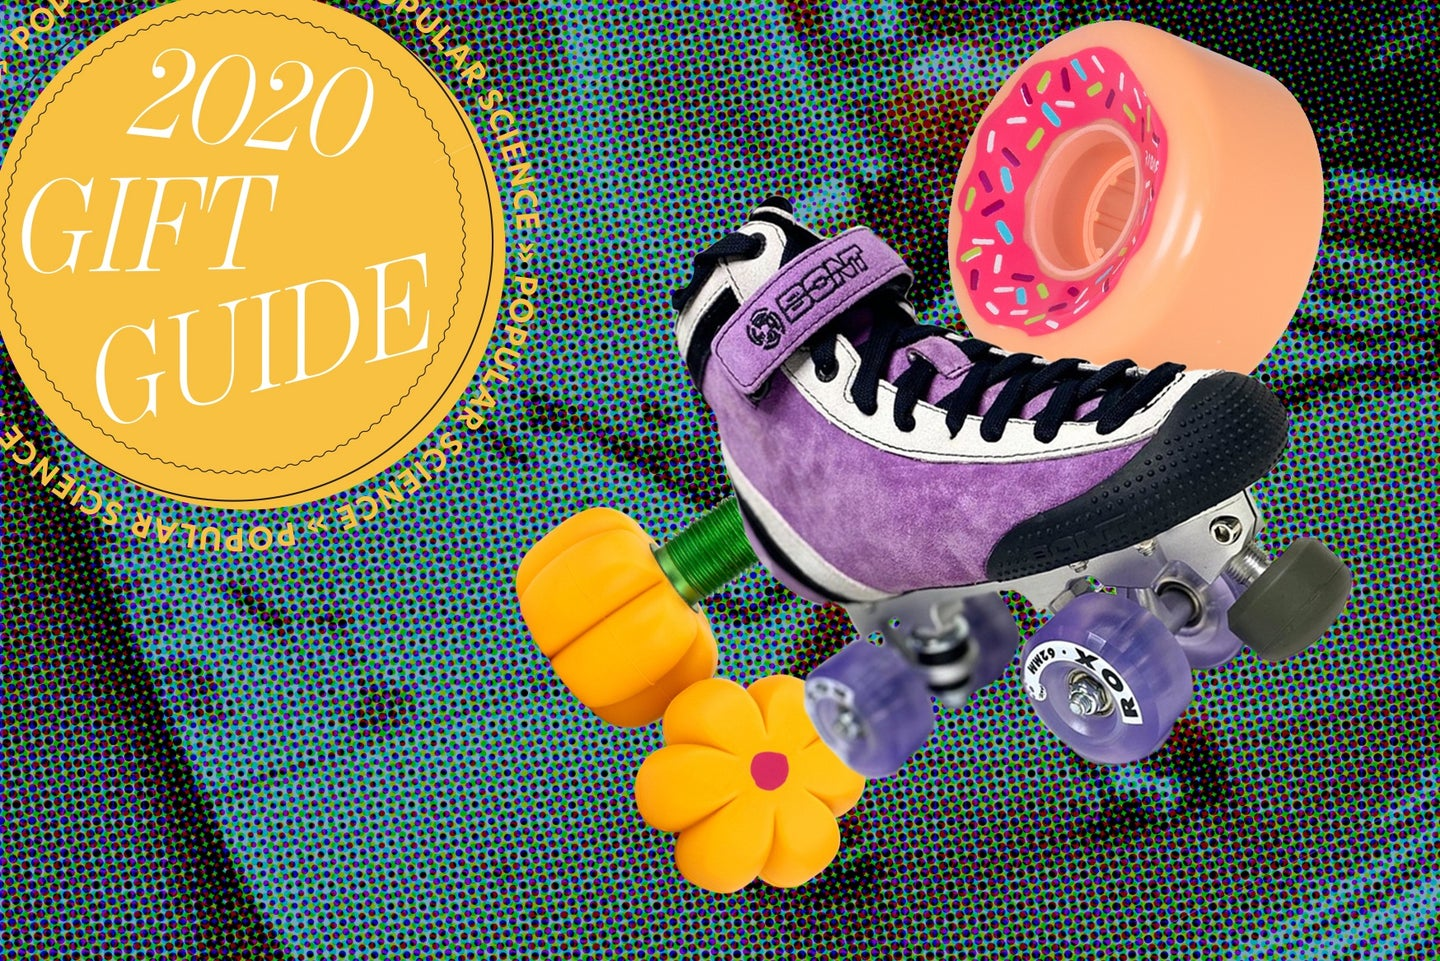 """A skate, flower-shaped toe stops, and a wheel painted like a donut sit next to a logo that reads """"2020 gift guide"""""""